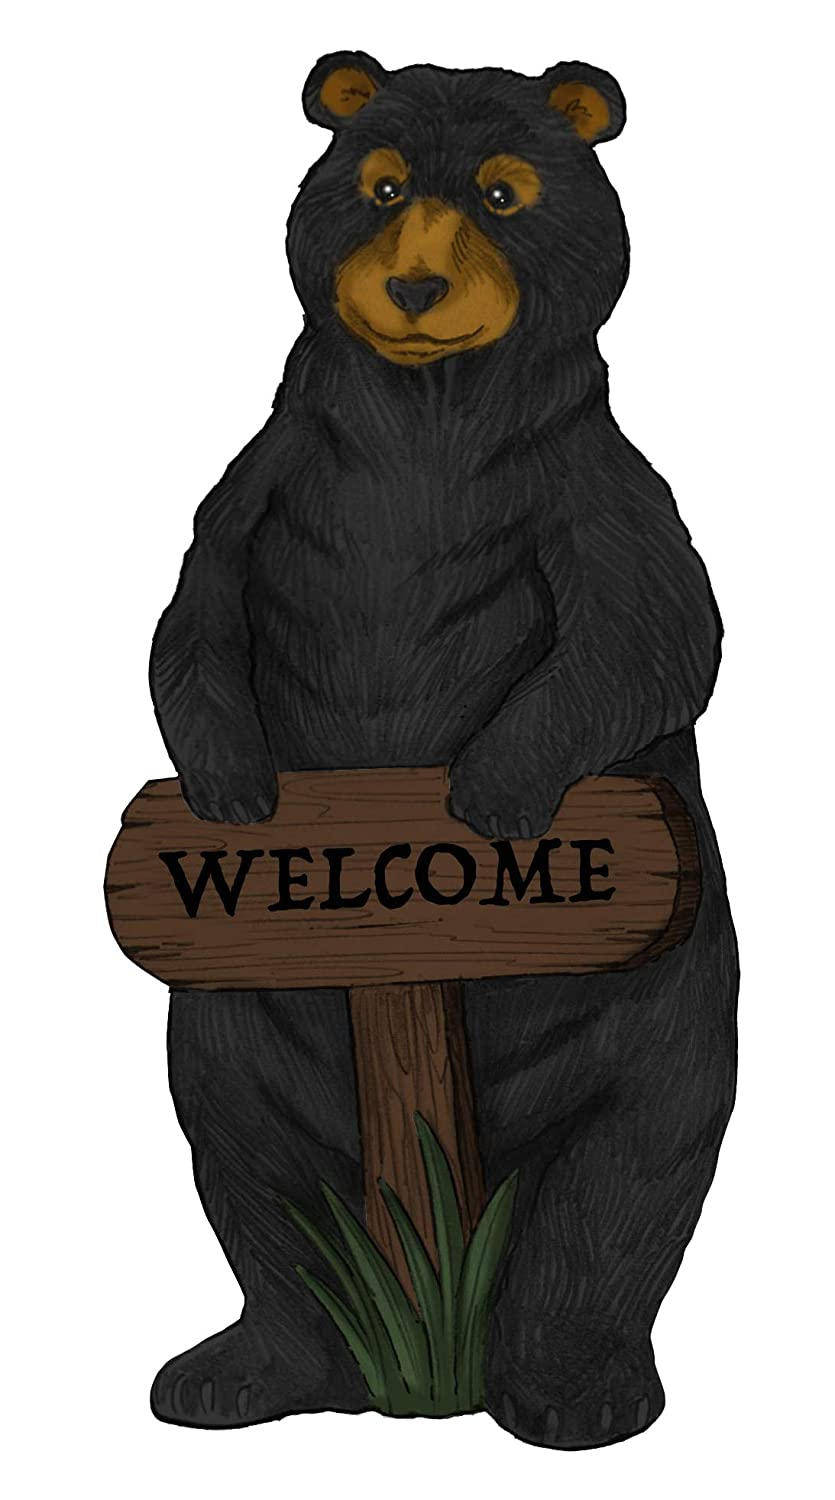 Alpine Corporation ZEN732 Welcome Sign Bear Garden Statue w/Timer, 36 inch Tall, Black and Brown